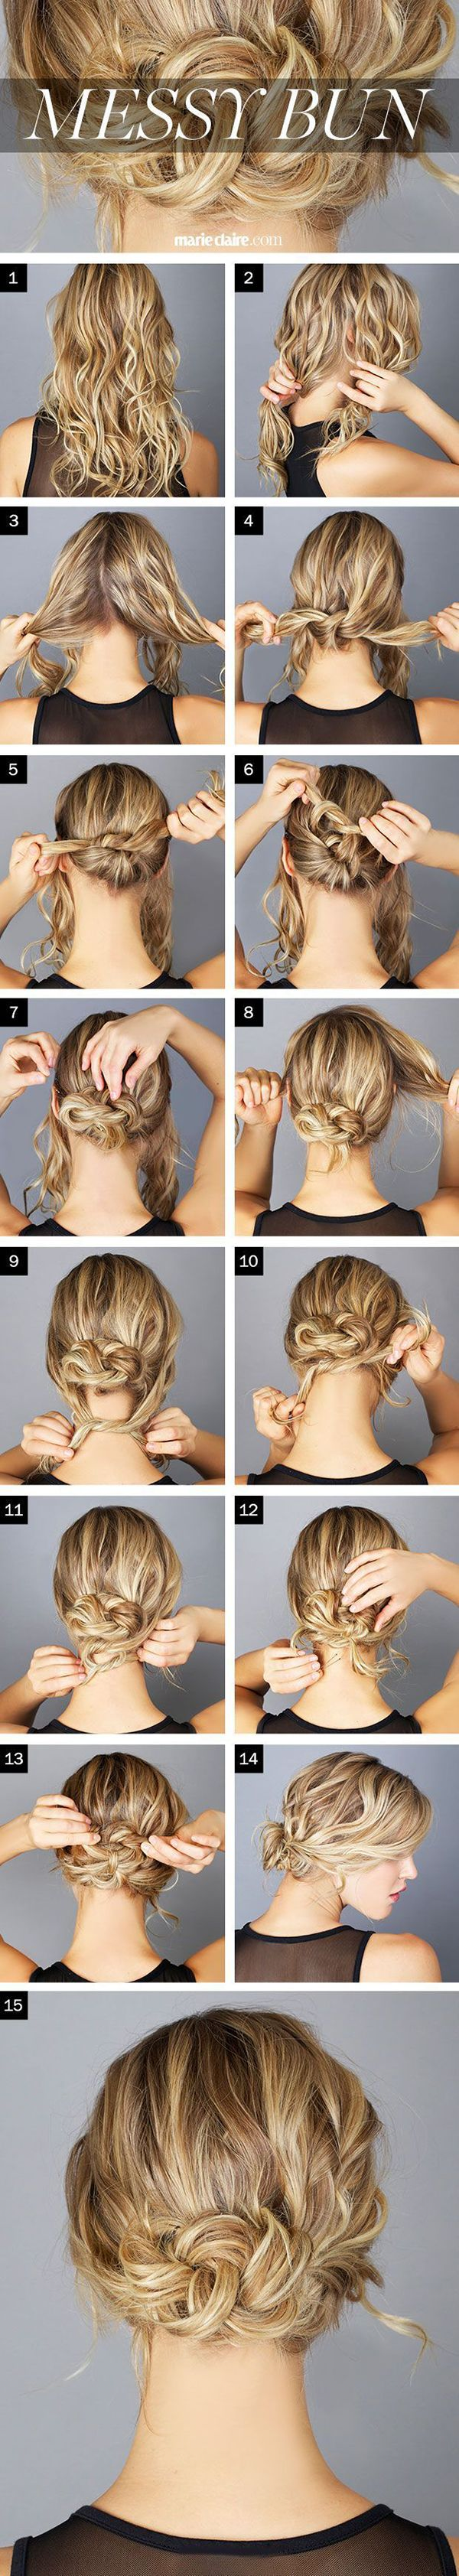 best hairstyle ideas images on pinterest hairstyle ideas